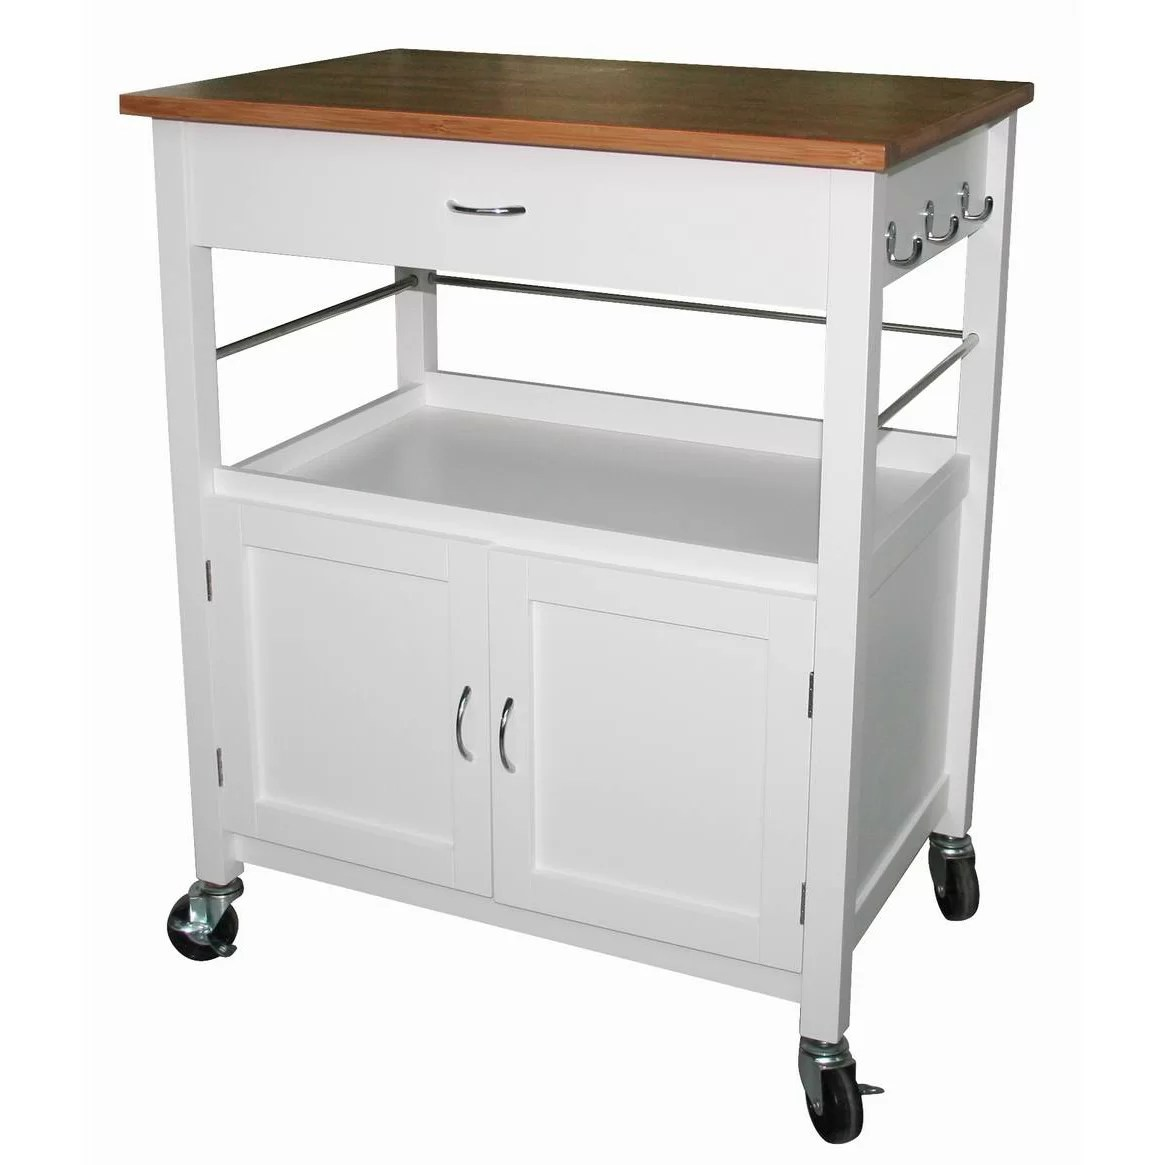 butcher block kitchen island cart refurbish cabinets ehemco with natural